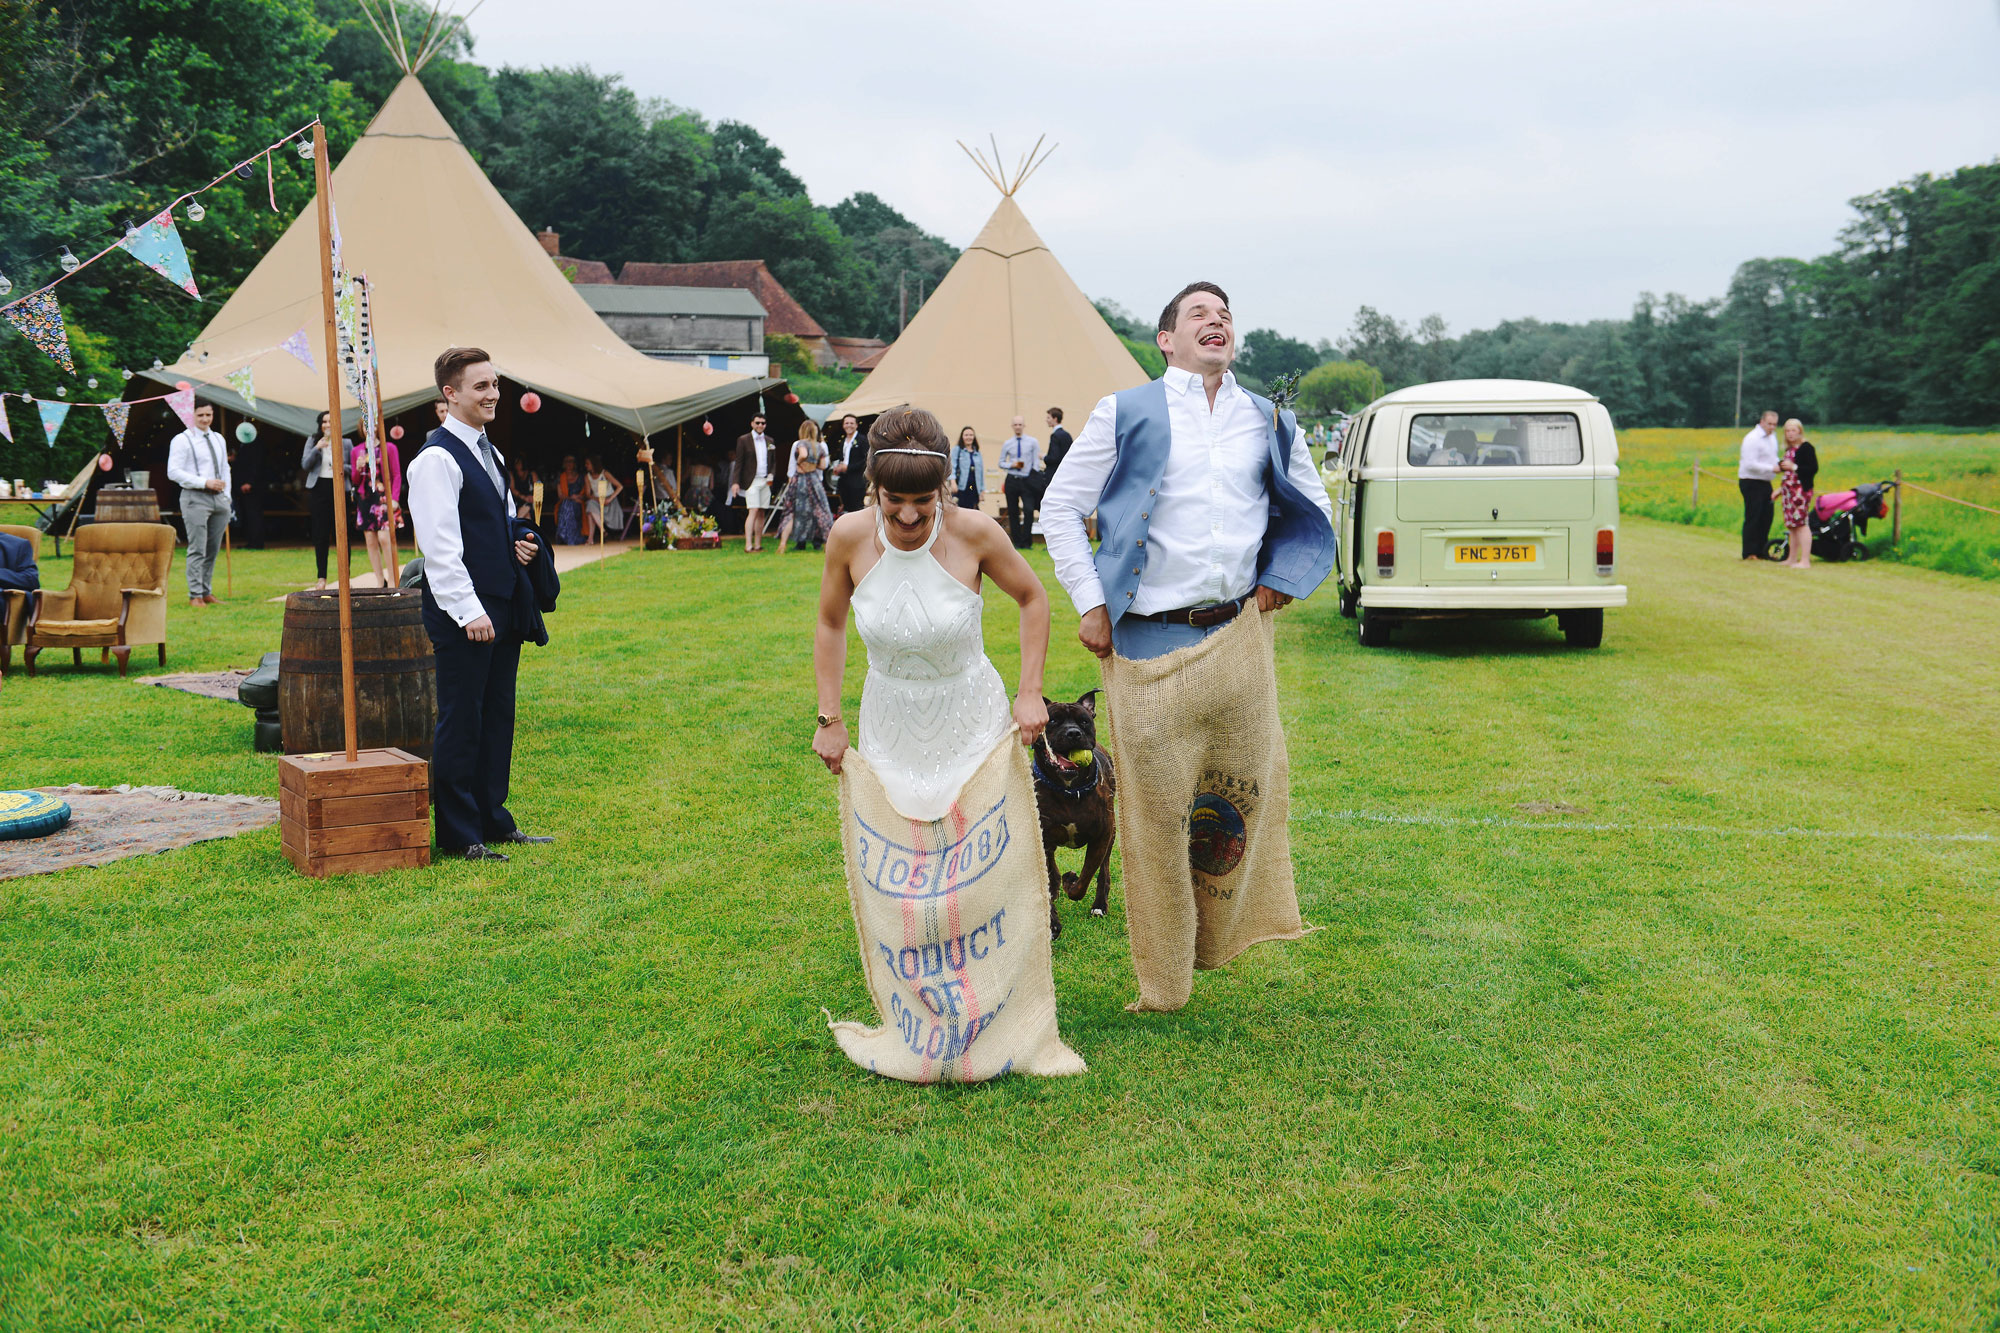 Outdoor Games For Those Mid Wedding Lulls Tentario Tipi Hire